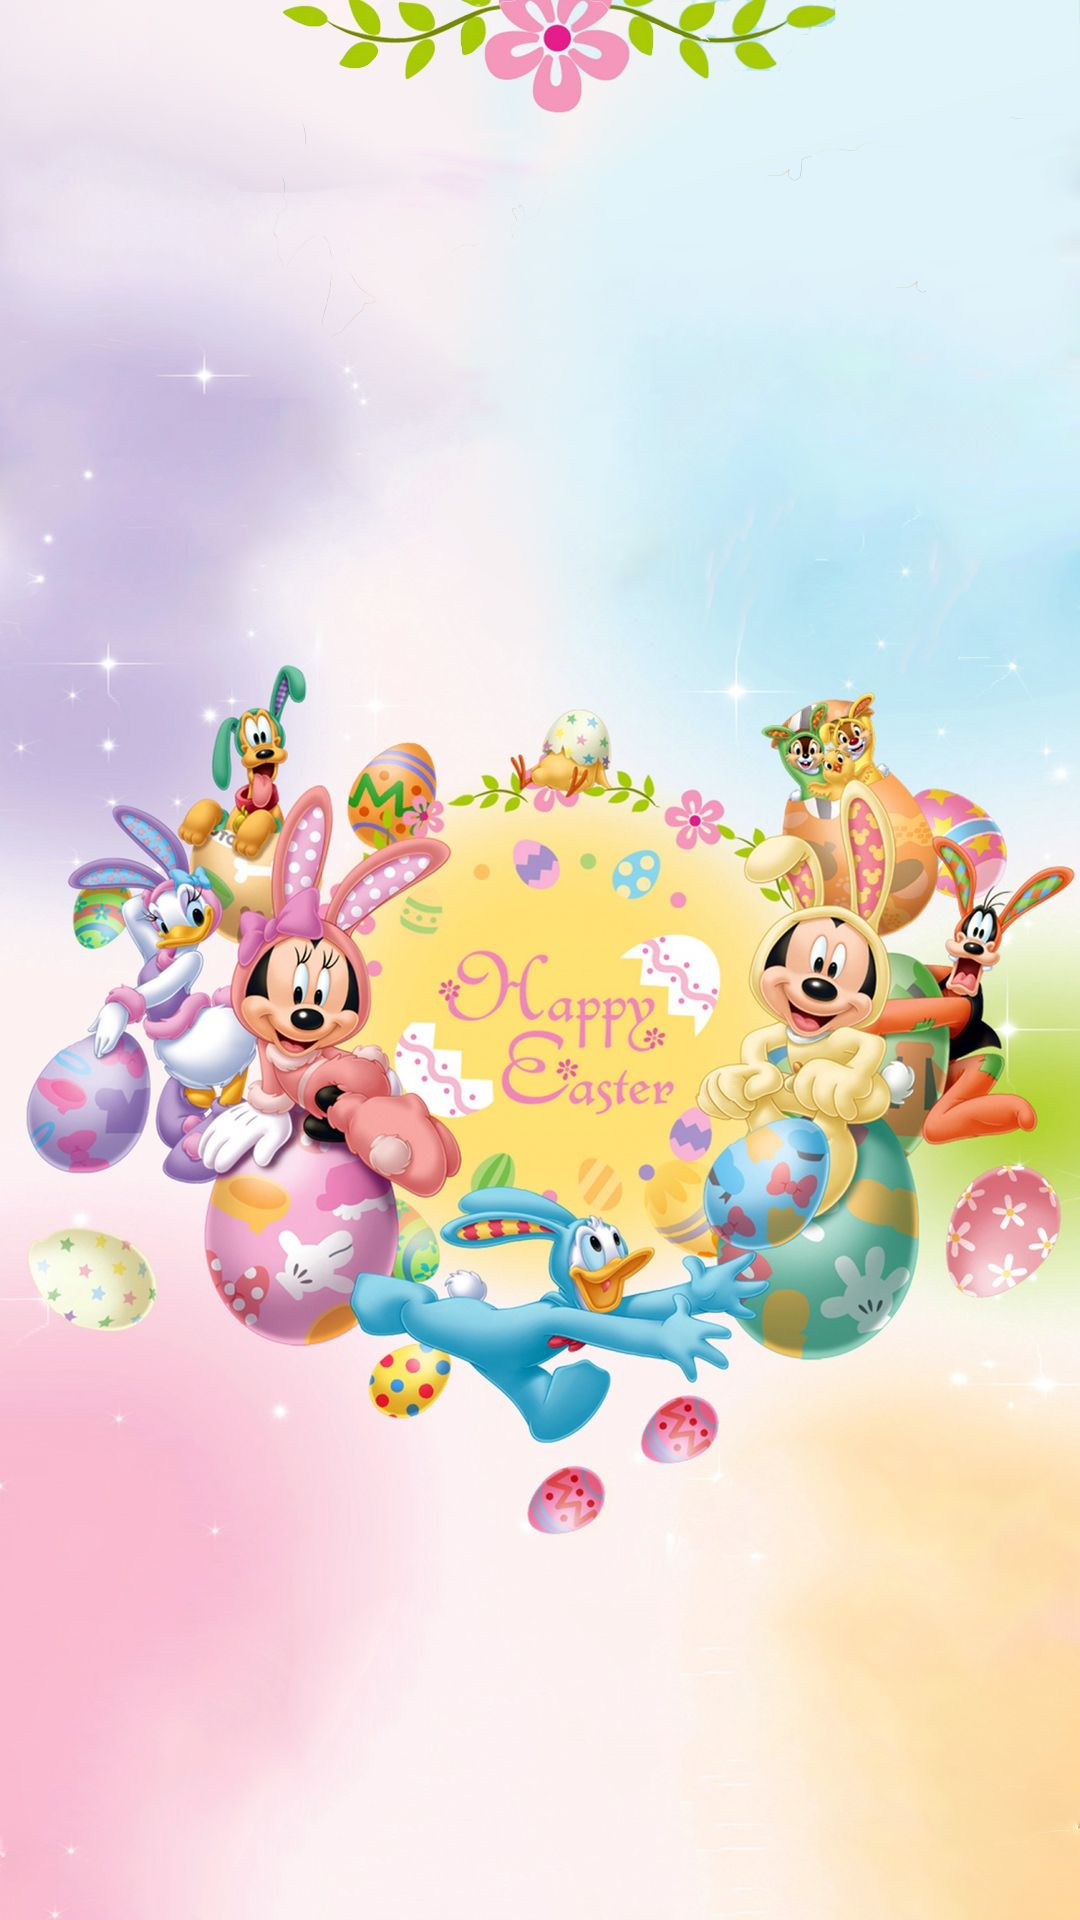 Disney Easter iPhone wallpaper | Take a picture it'll last ...